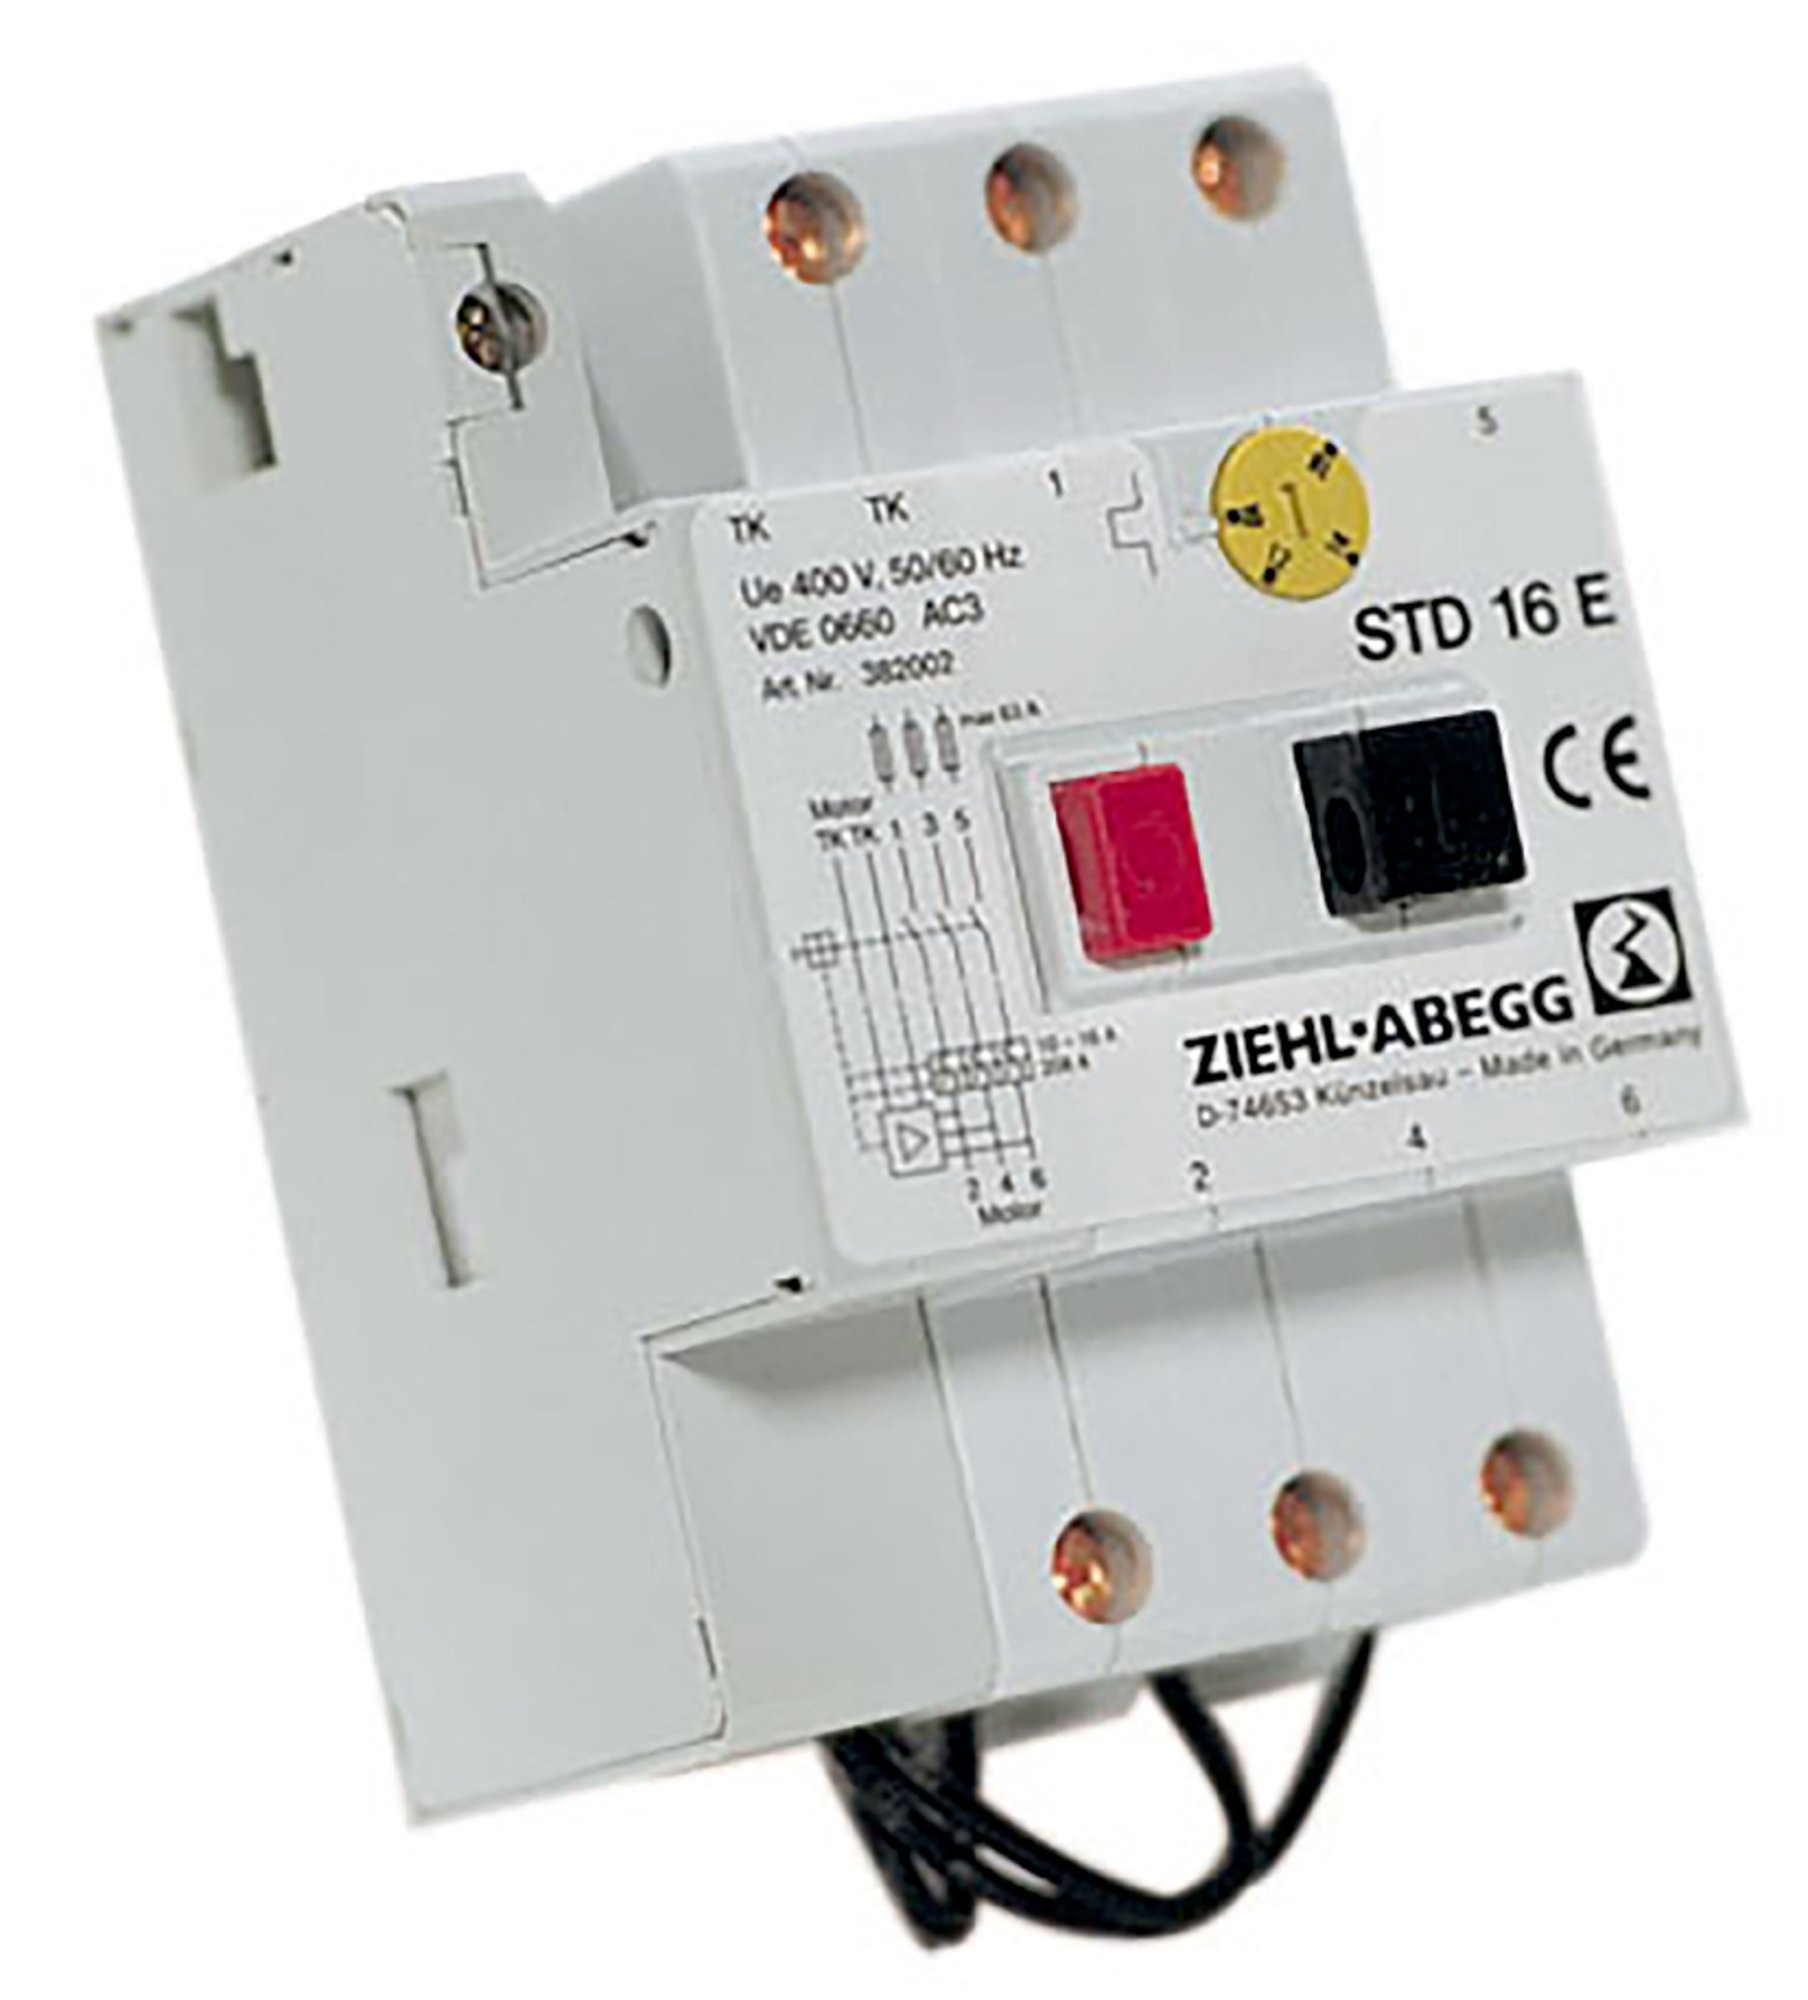 STDT 16E Motor Protection - Systemair